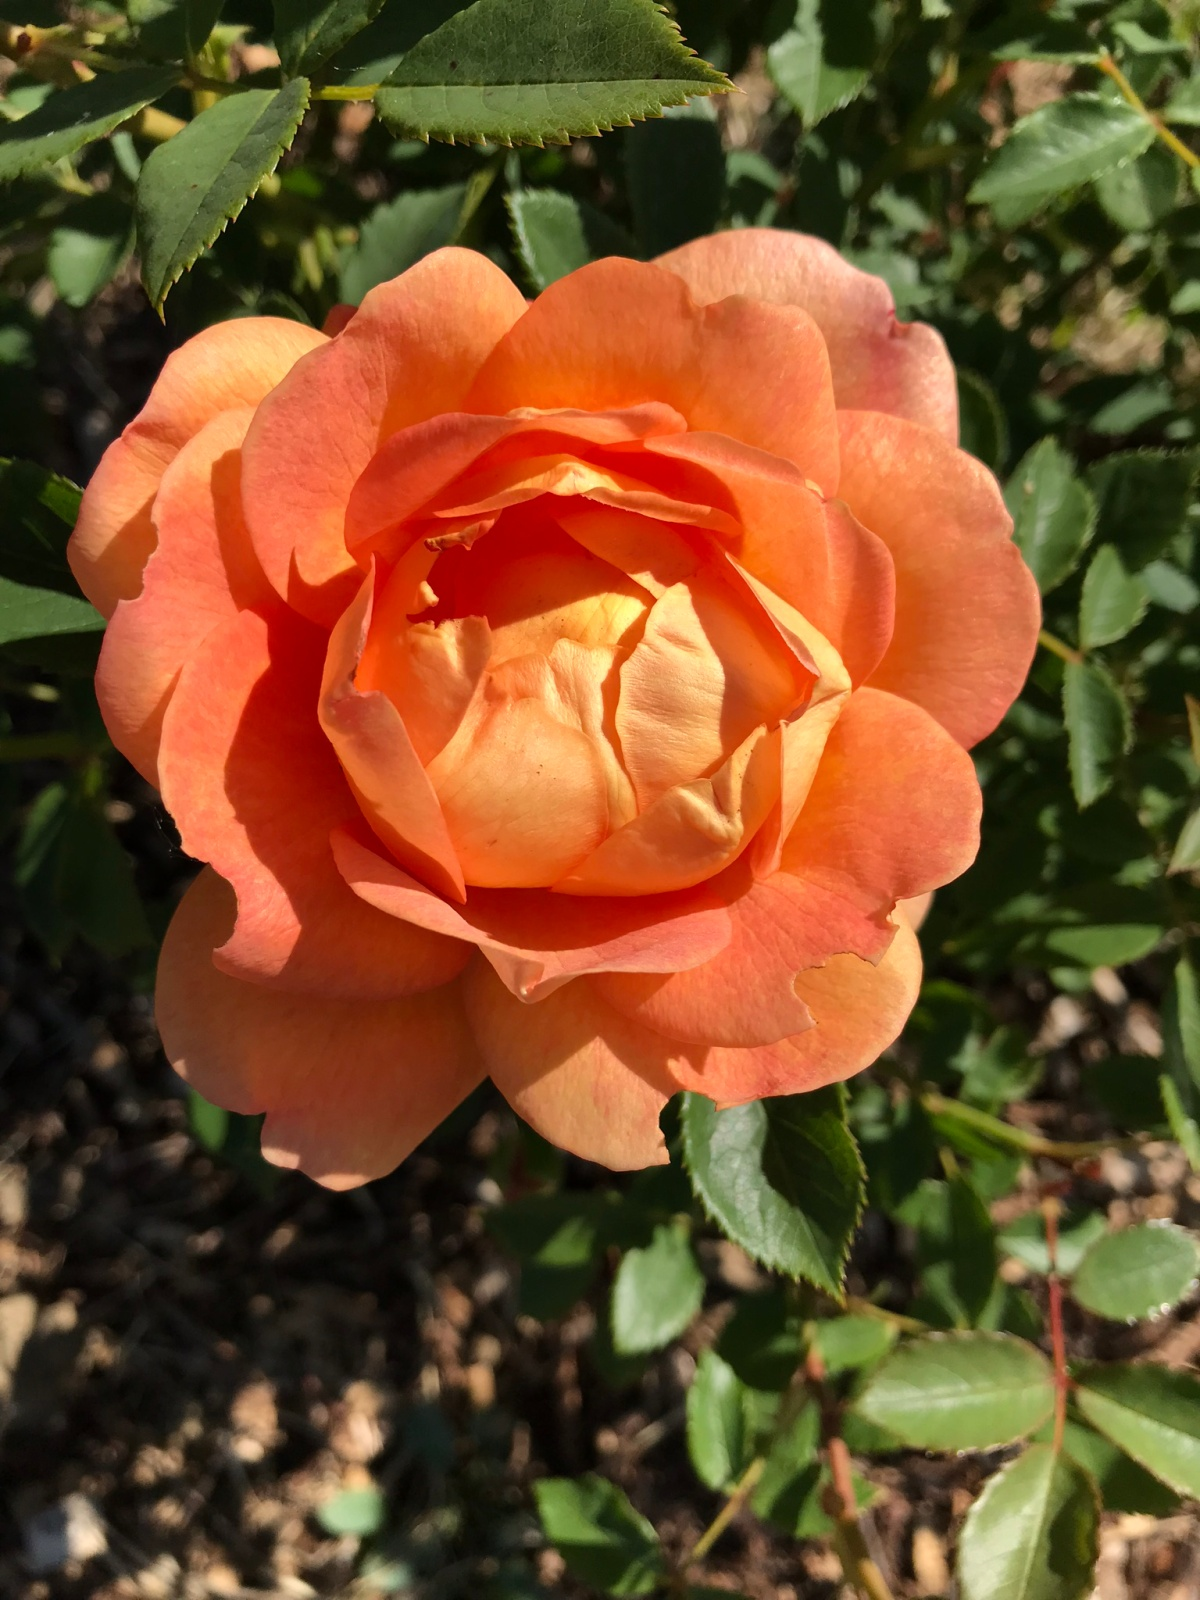 The rose garden: planted in January, flowering by May